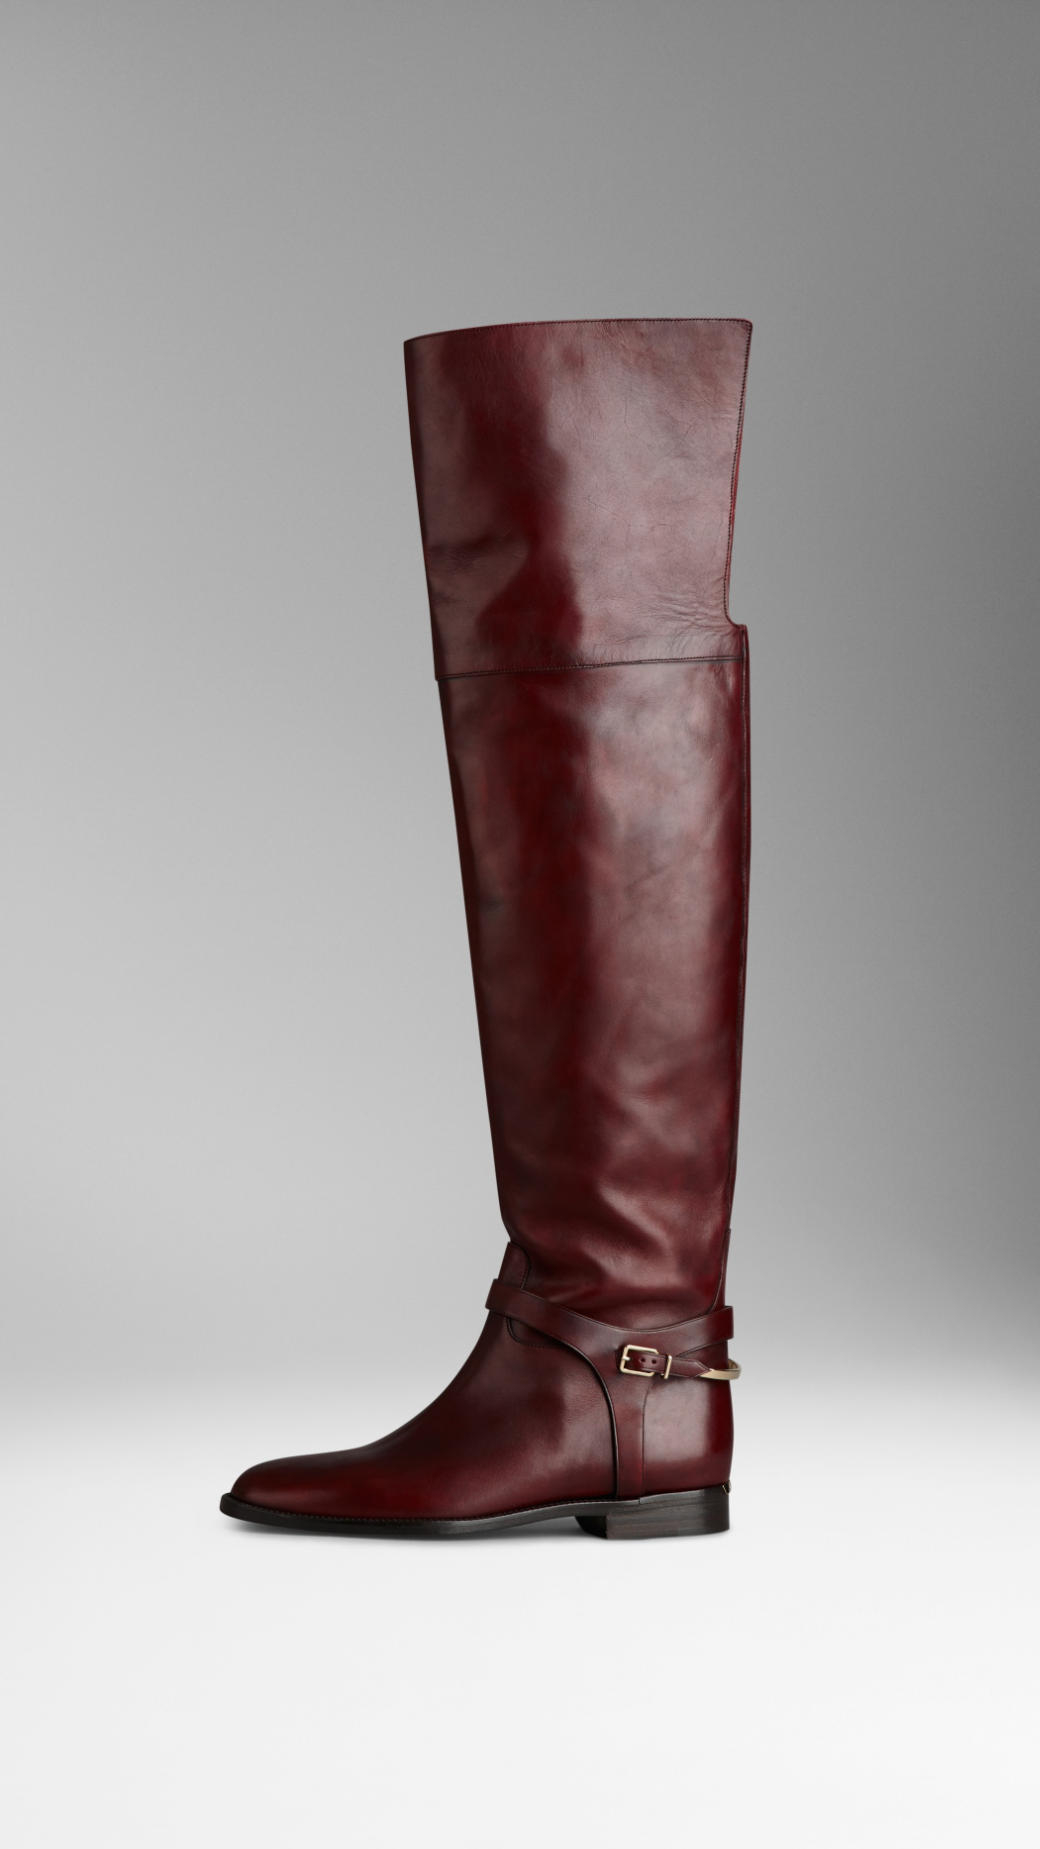 ecdbae392b4 Lyst - Burberry Buckle Detail Over-The-Knee Boots in Red